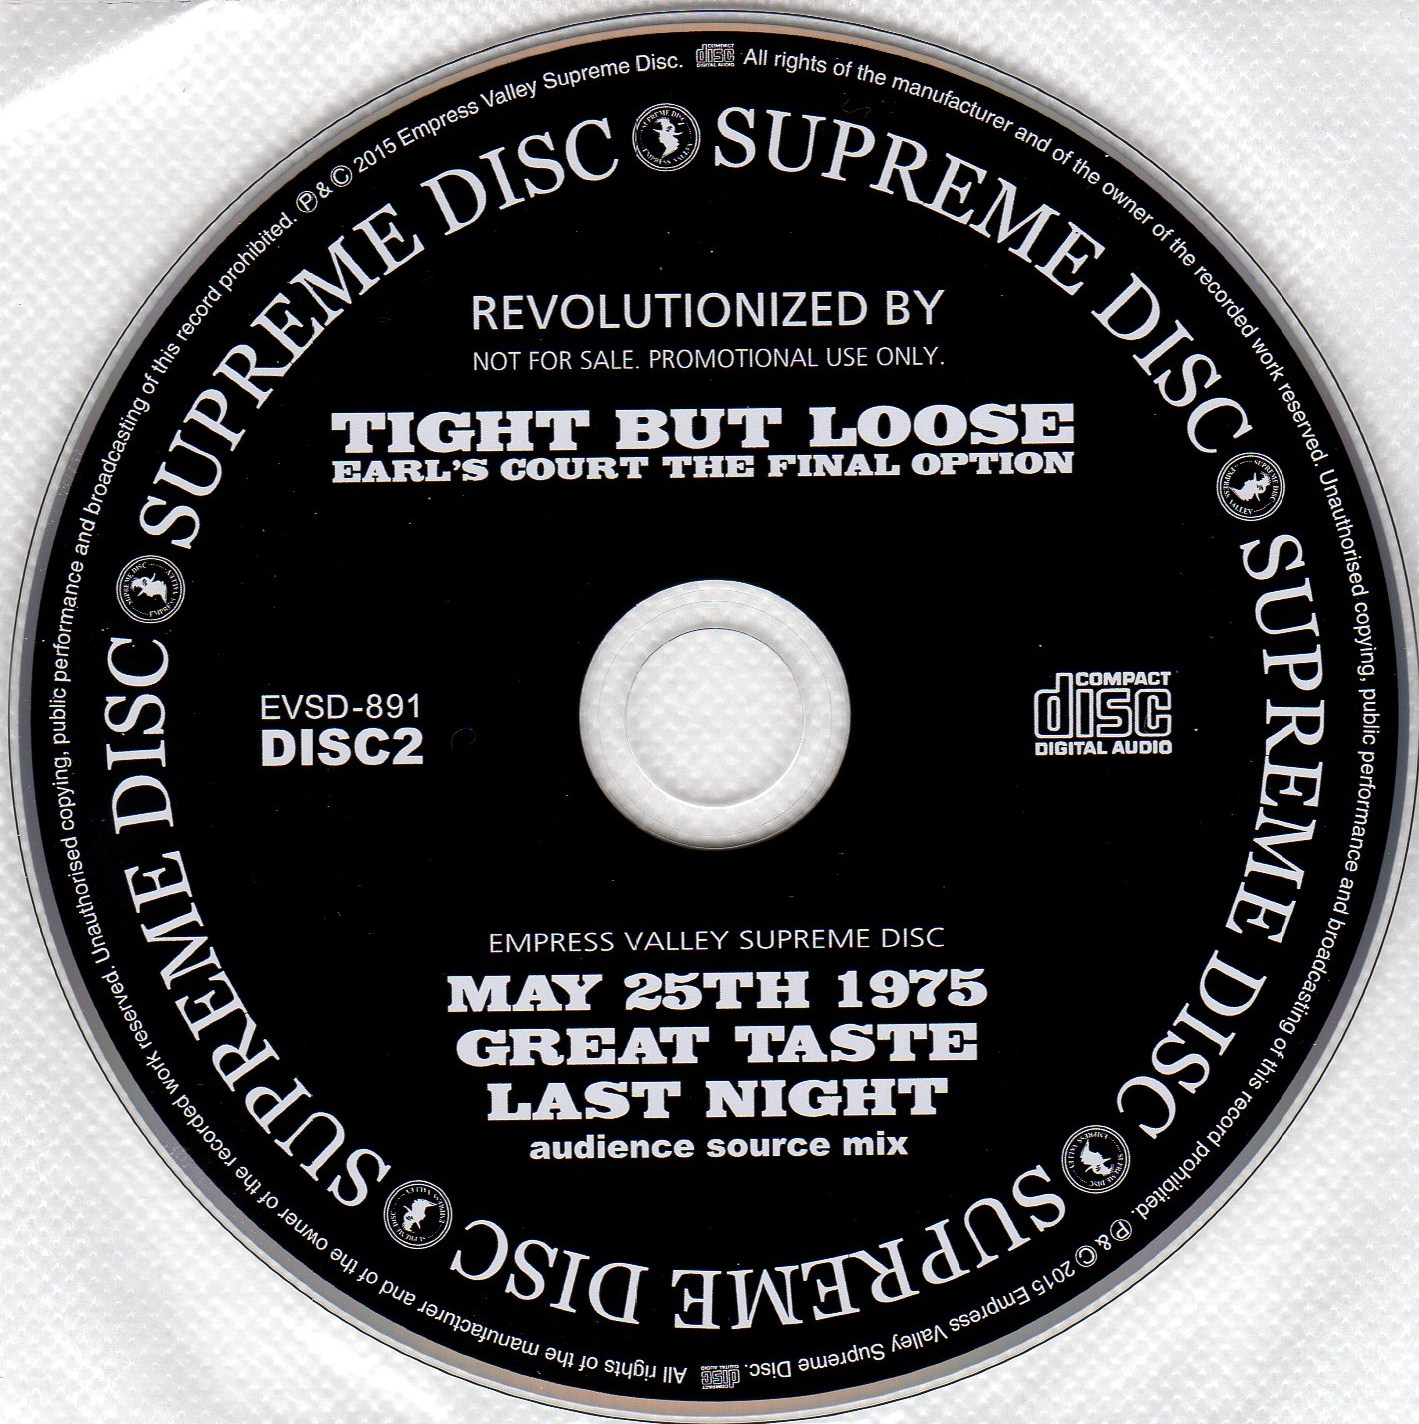 LedZeppelin1975-05-25EarlsCourtLondonUK (2).jpg